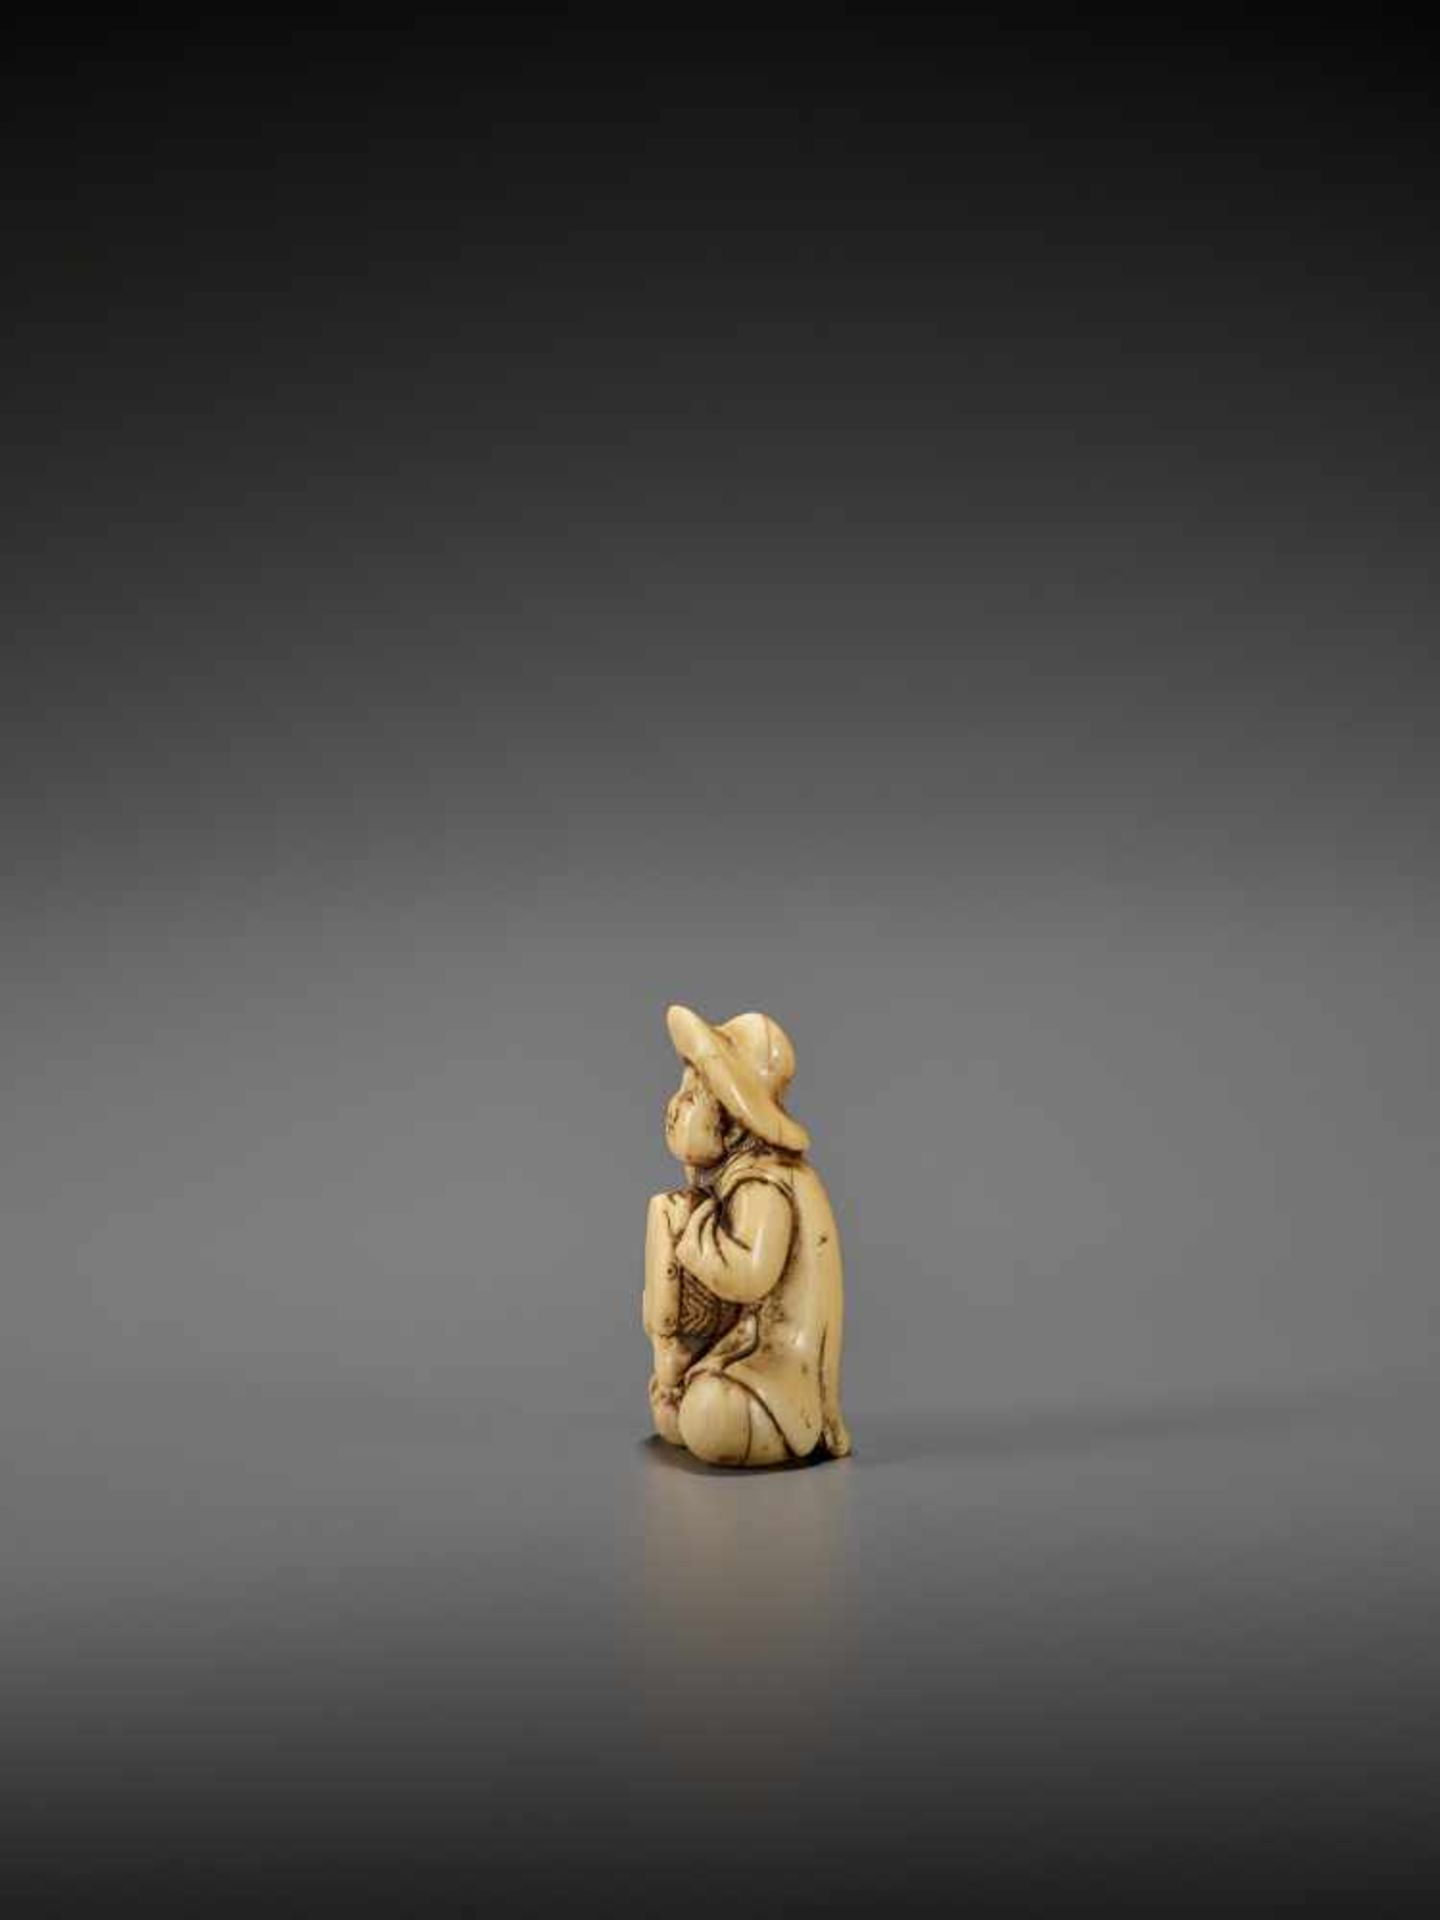 AN IVORY NETSUKE OF A DUTCHMAN WITH DRUM UnsignedJapan, late 18th century, Edo period (1615-1868) - Image 4 of 7